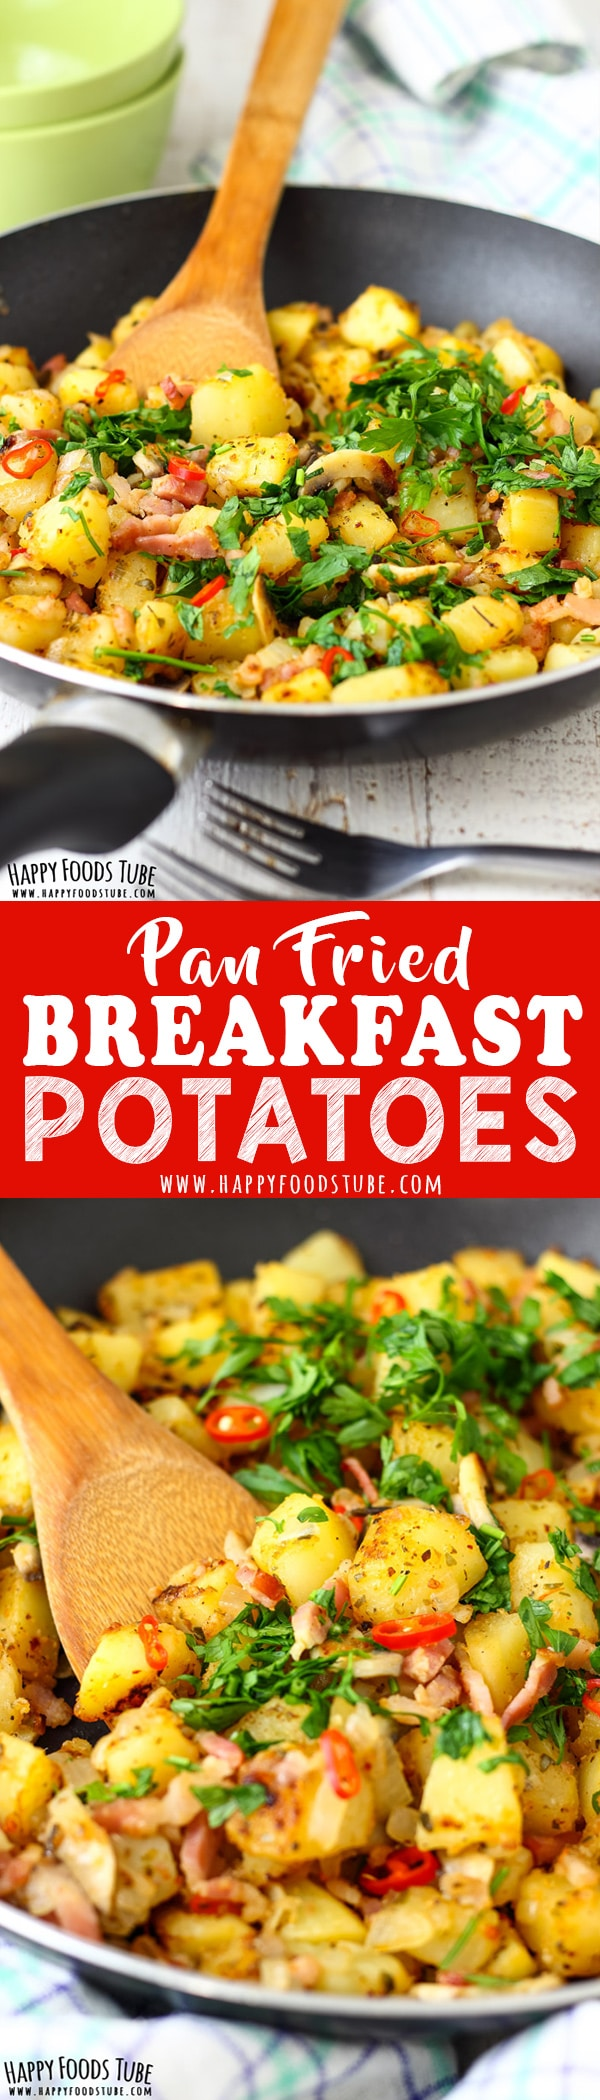 These pan fried breakfast potatoes are quick to make, filling and seasoned to perfection. Potatoes, mushrooms and bacon are turned into a delicious breakfast meal. Crispy pan fried breakfast potatoes recipe. #mealplanning #homecooking #breakfast